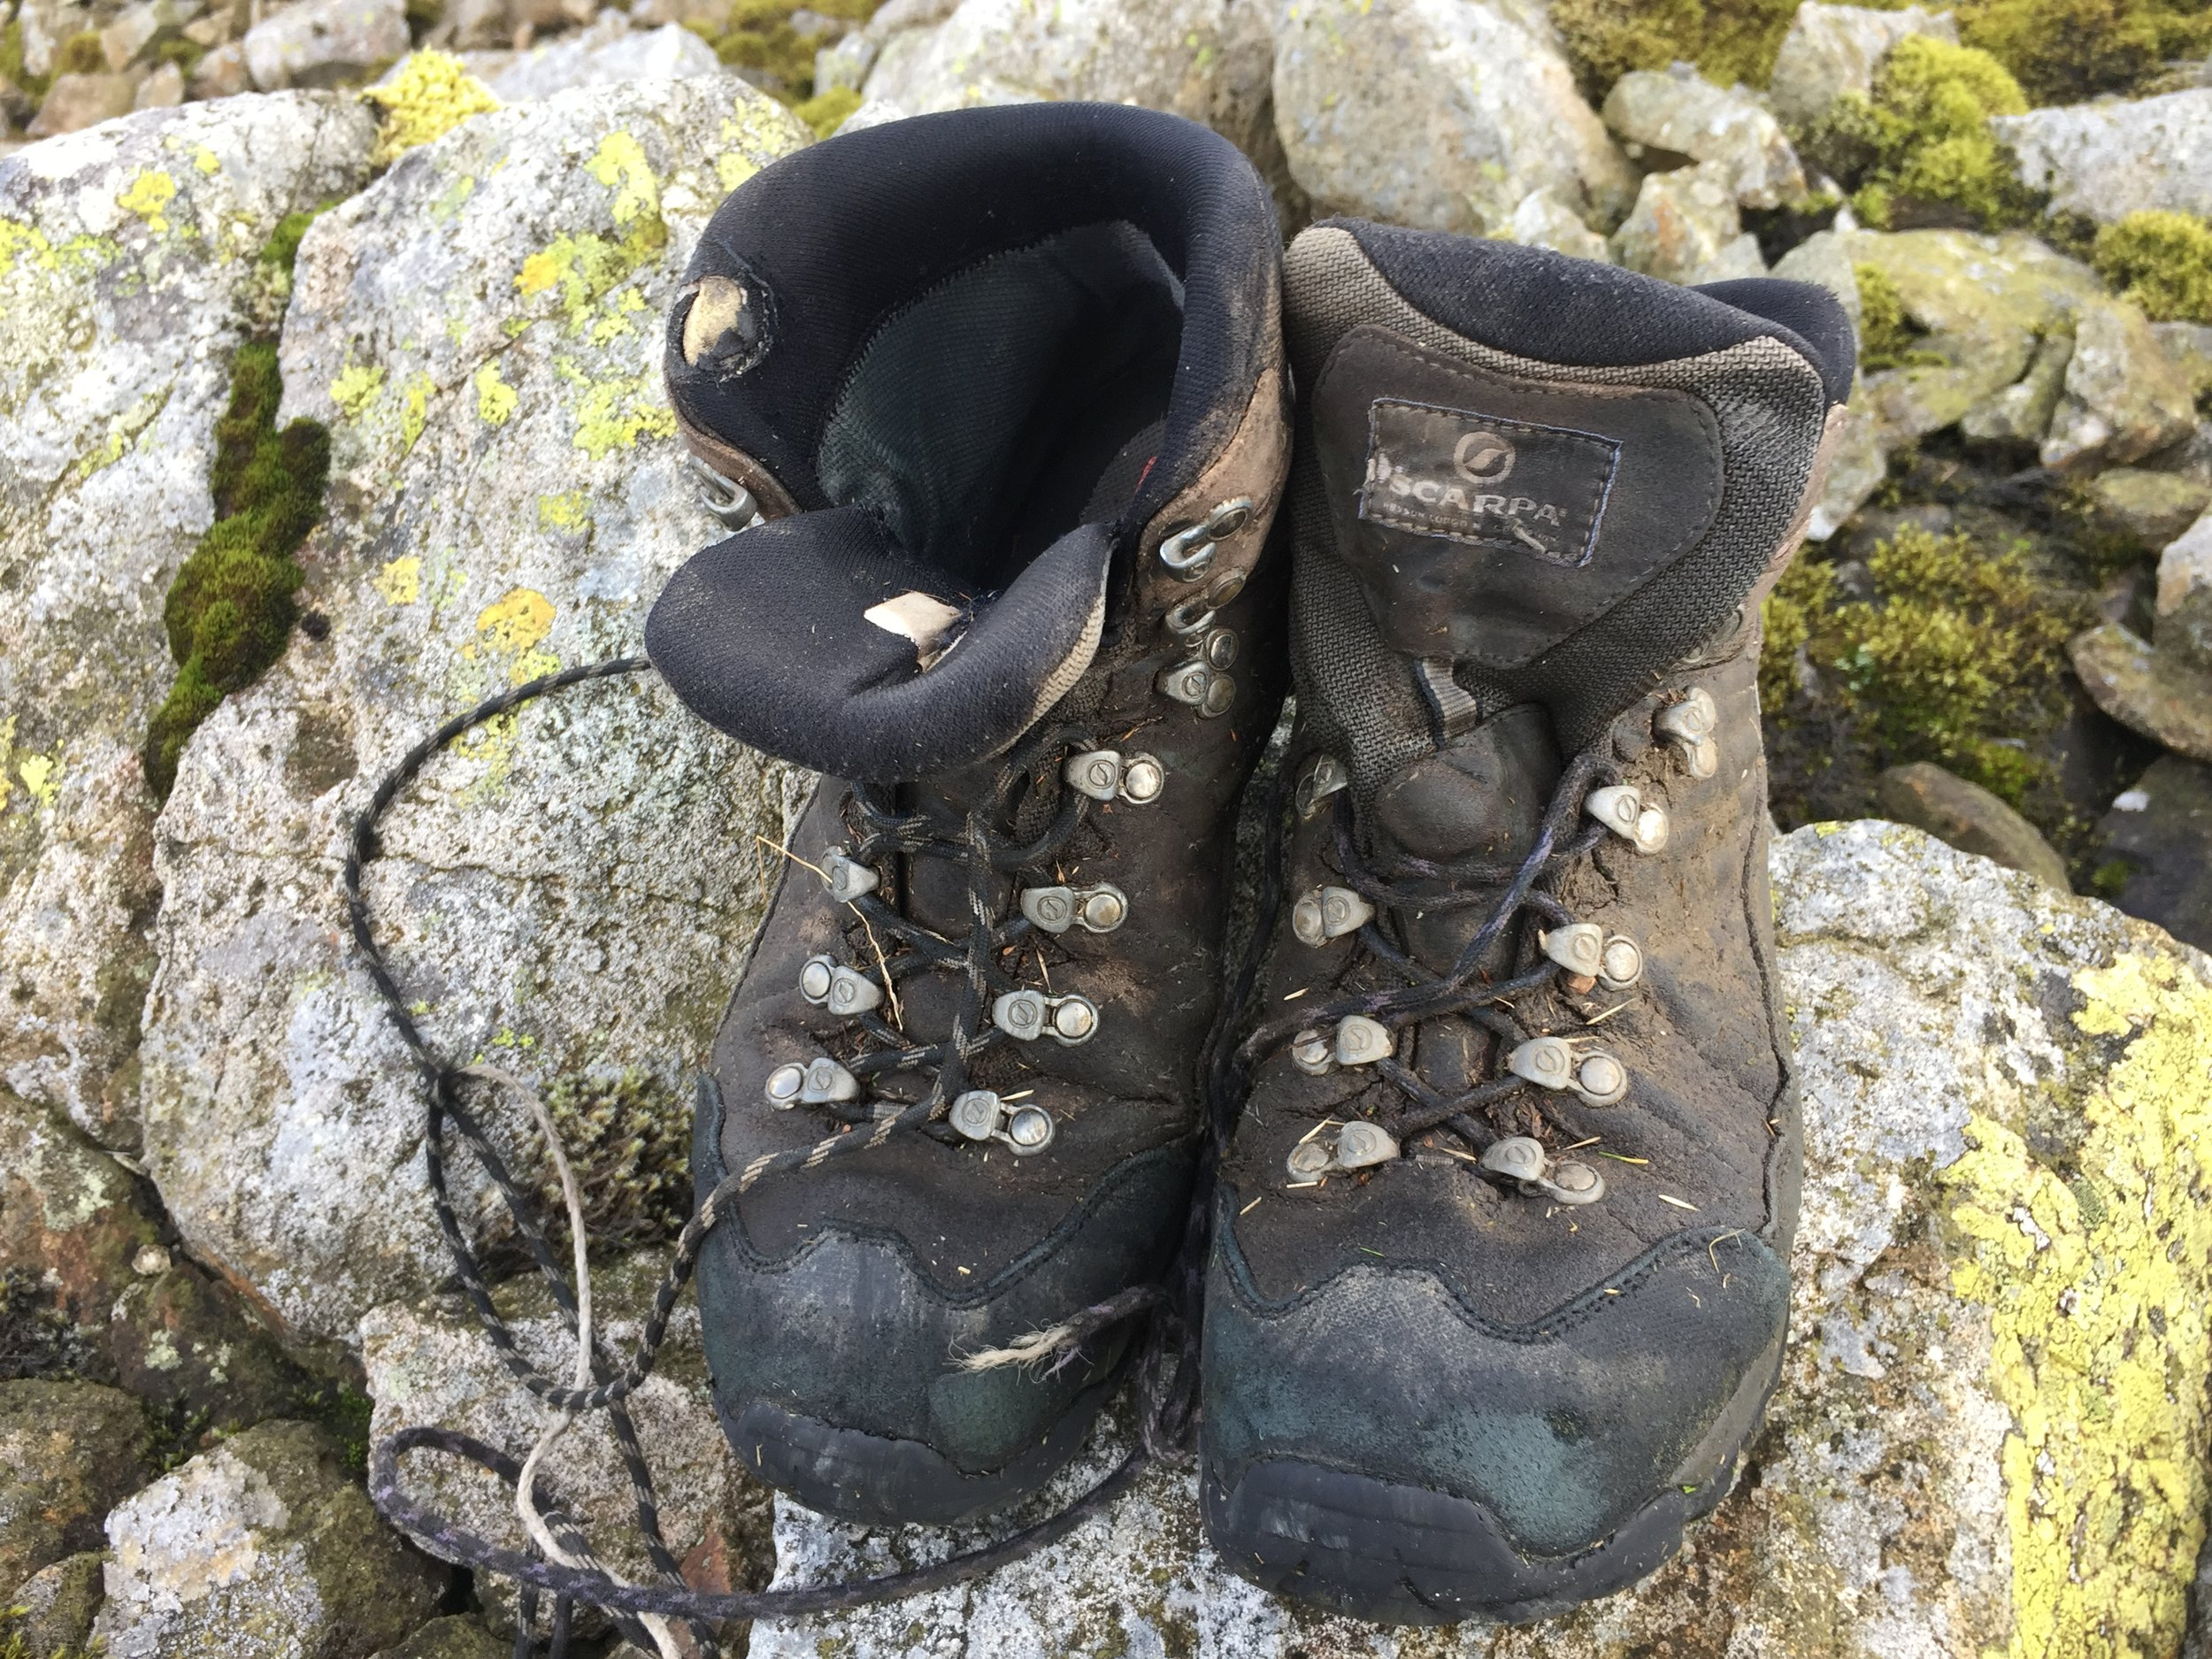 James Forrest climbed 446 mountains in his wife's old hiking boots